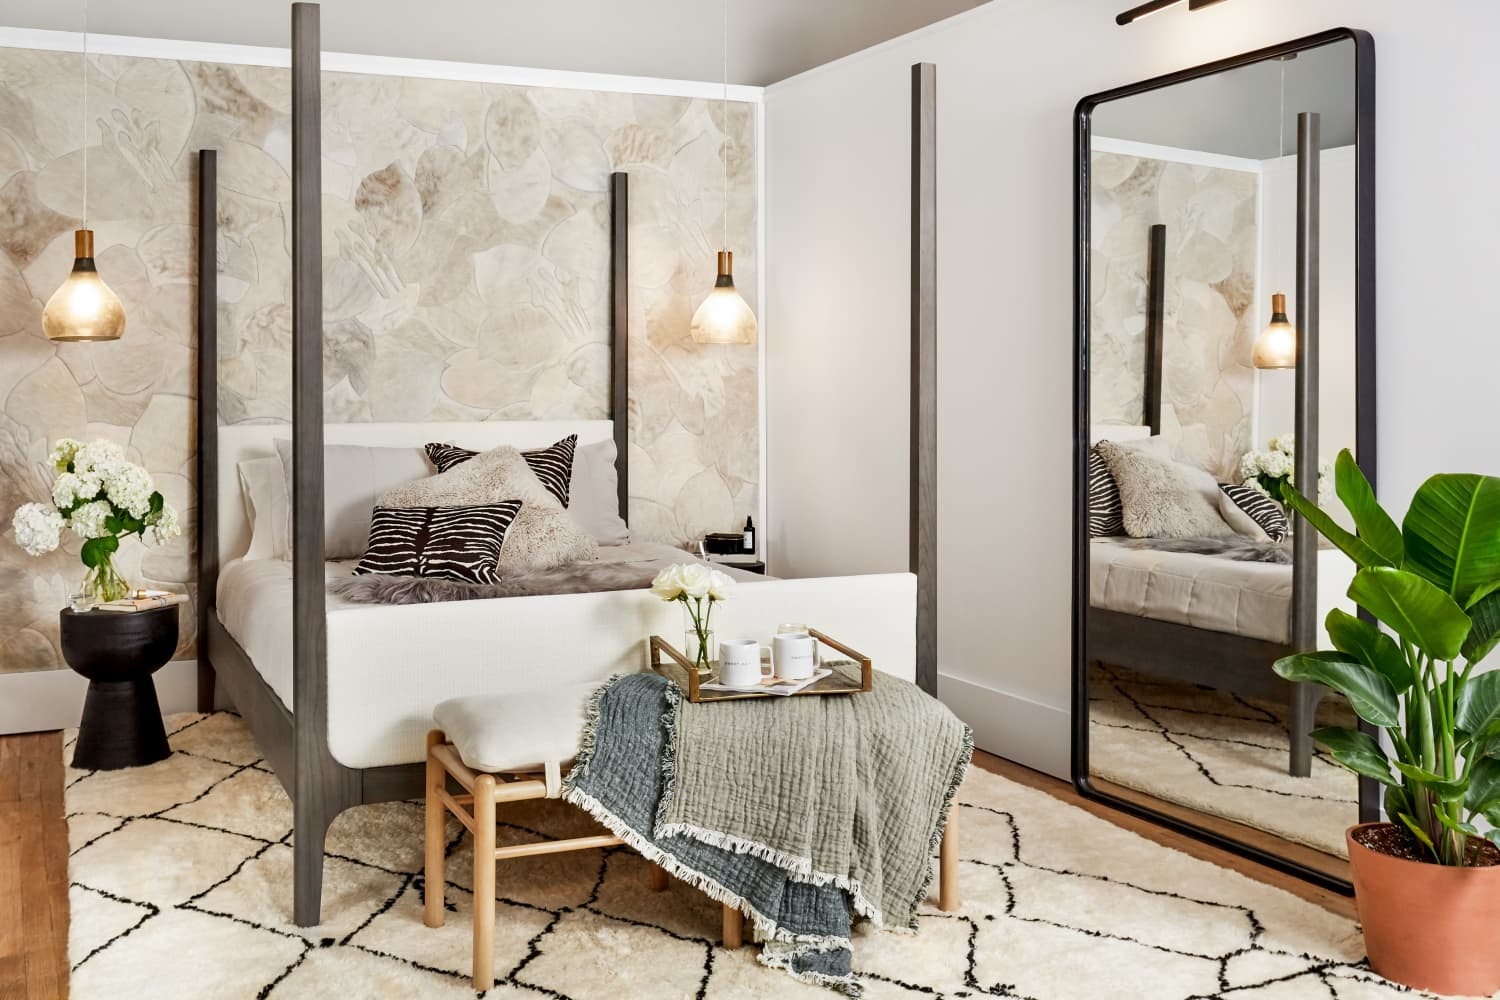 Turn Your Home Into A Calming Retreat With Ayesha Curry's Serenity-Inspired Design